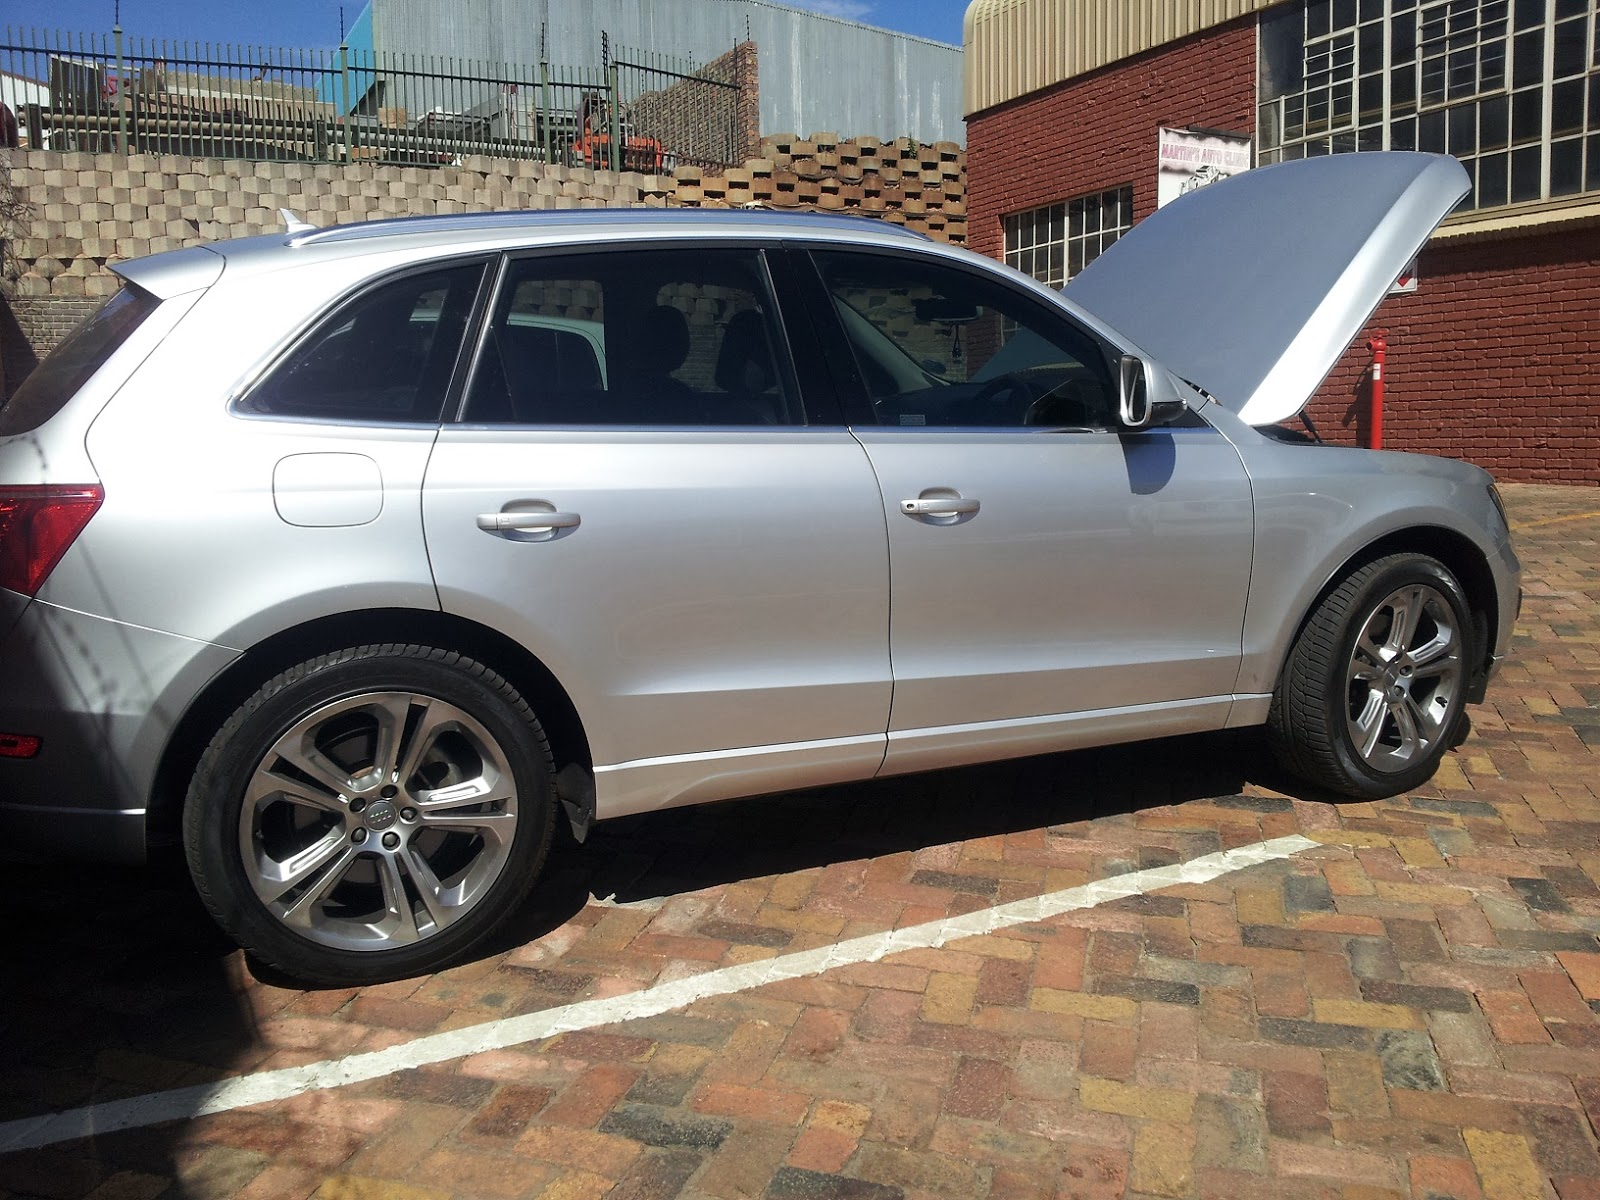 audi q5 3 0 tdi dpf remove delete performance chip tuning ecu remapping 176kw to 213kw. Black Bedroom Furniture Sets. Home Design Ideas